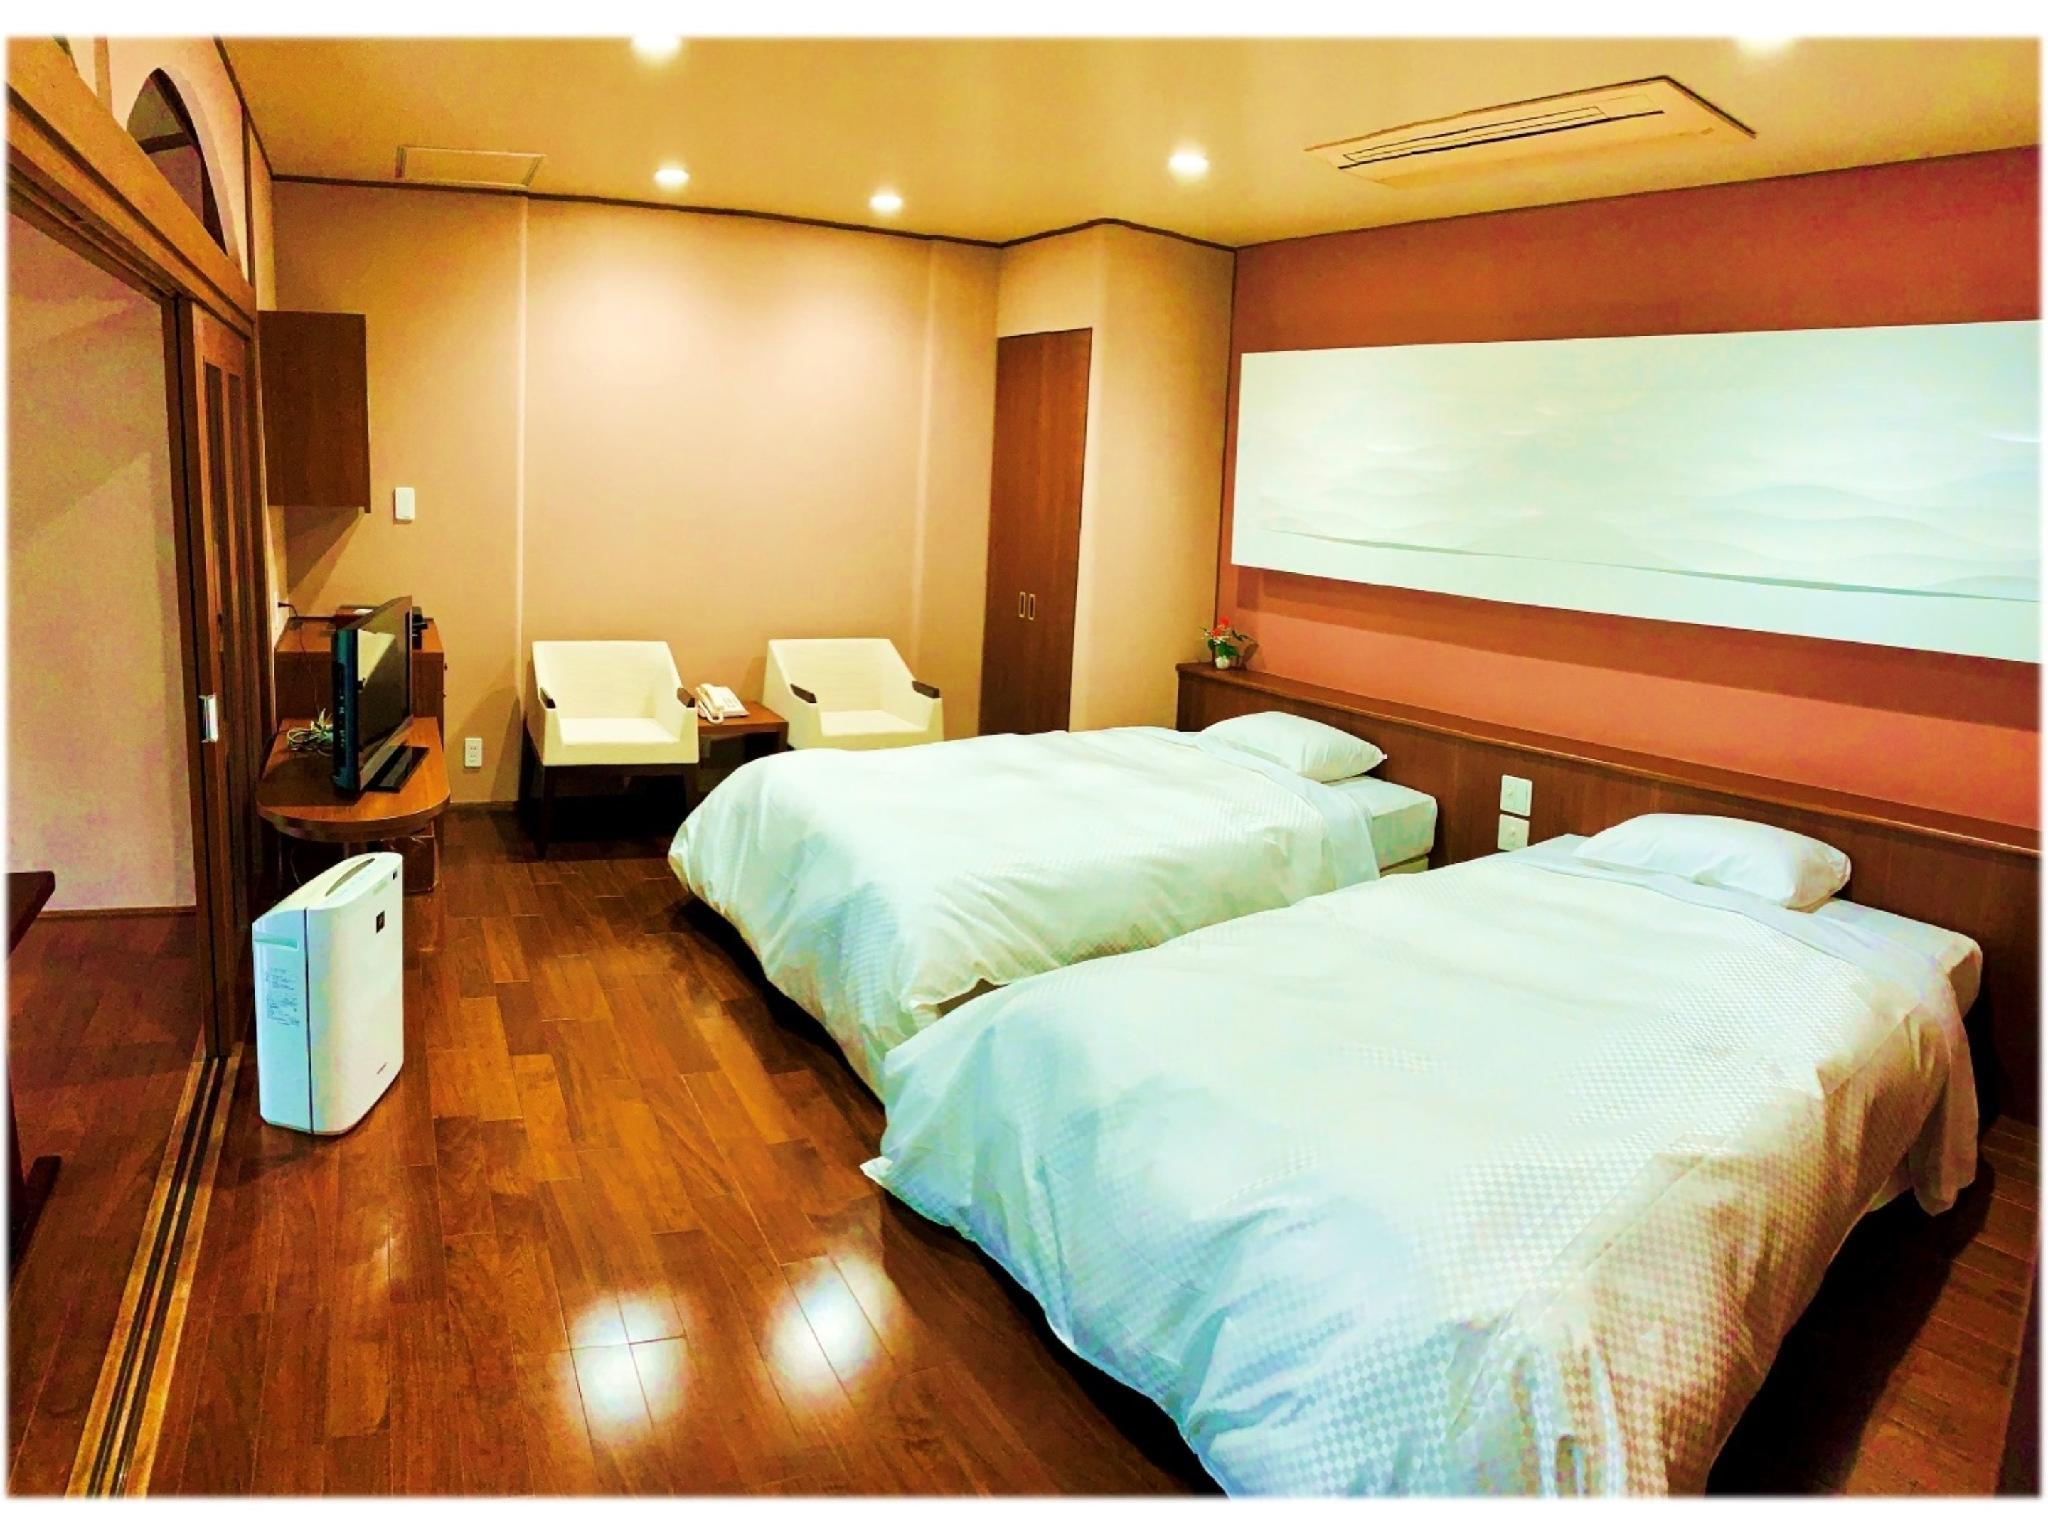 和洋式房 (Japanese/Western-style Room with Open-air Bath (Japanese-style Room + Western-style Room, 2 Beds))